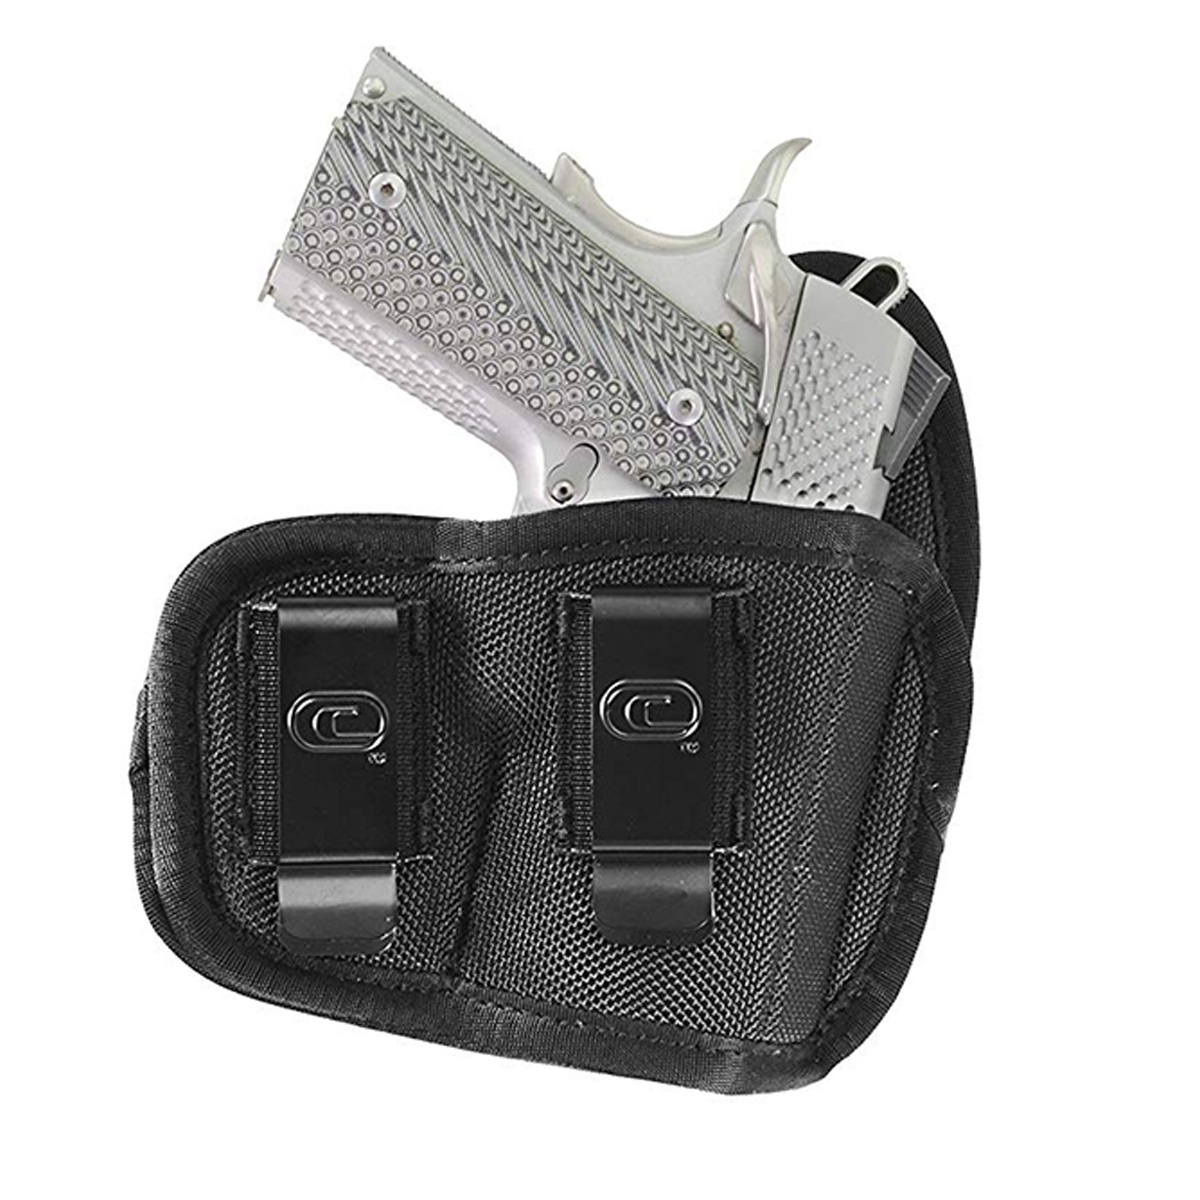 Crossfire Elite Cyclone Micro Semi-Auto Holster